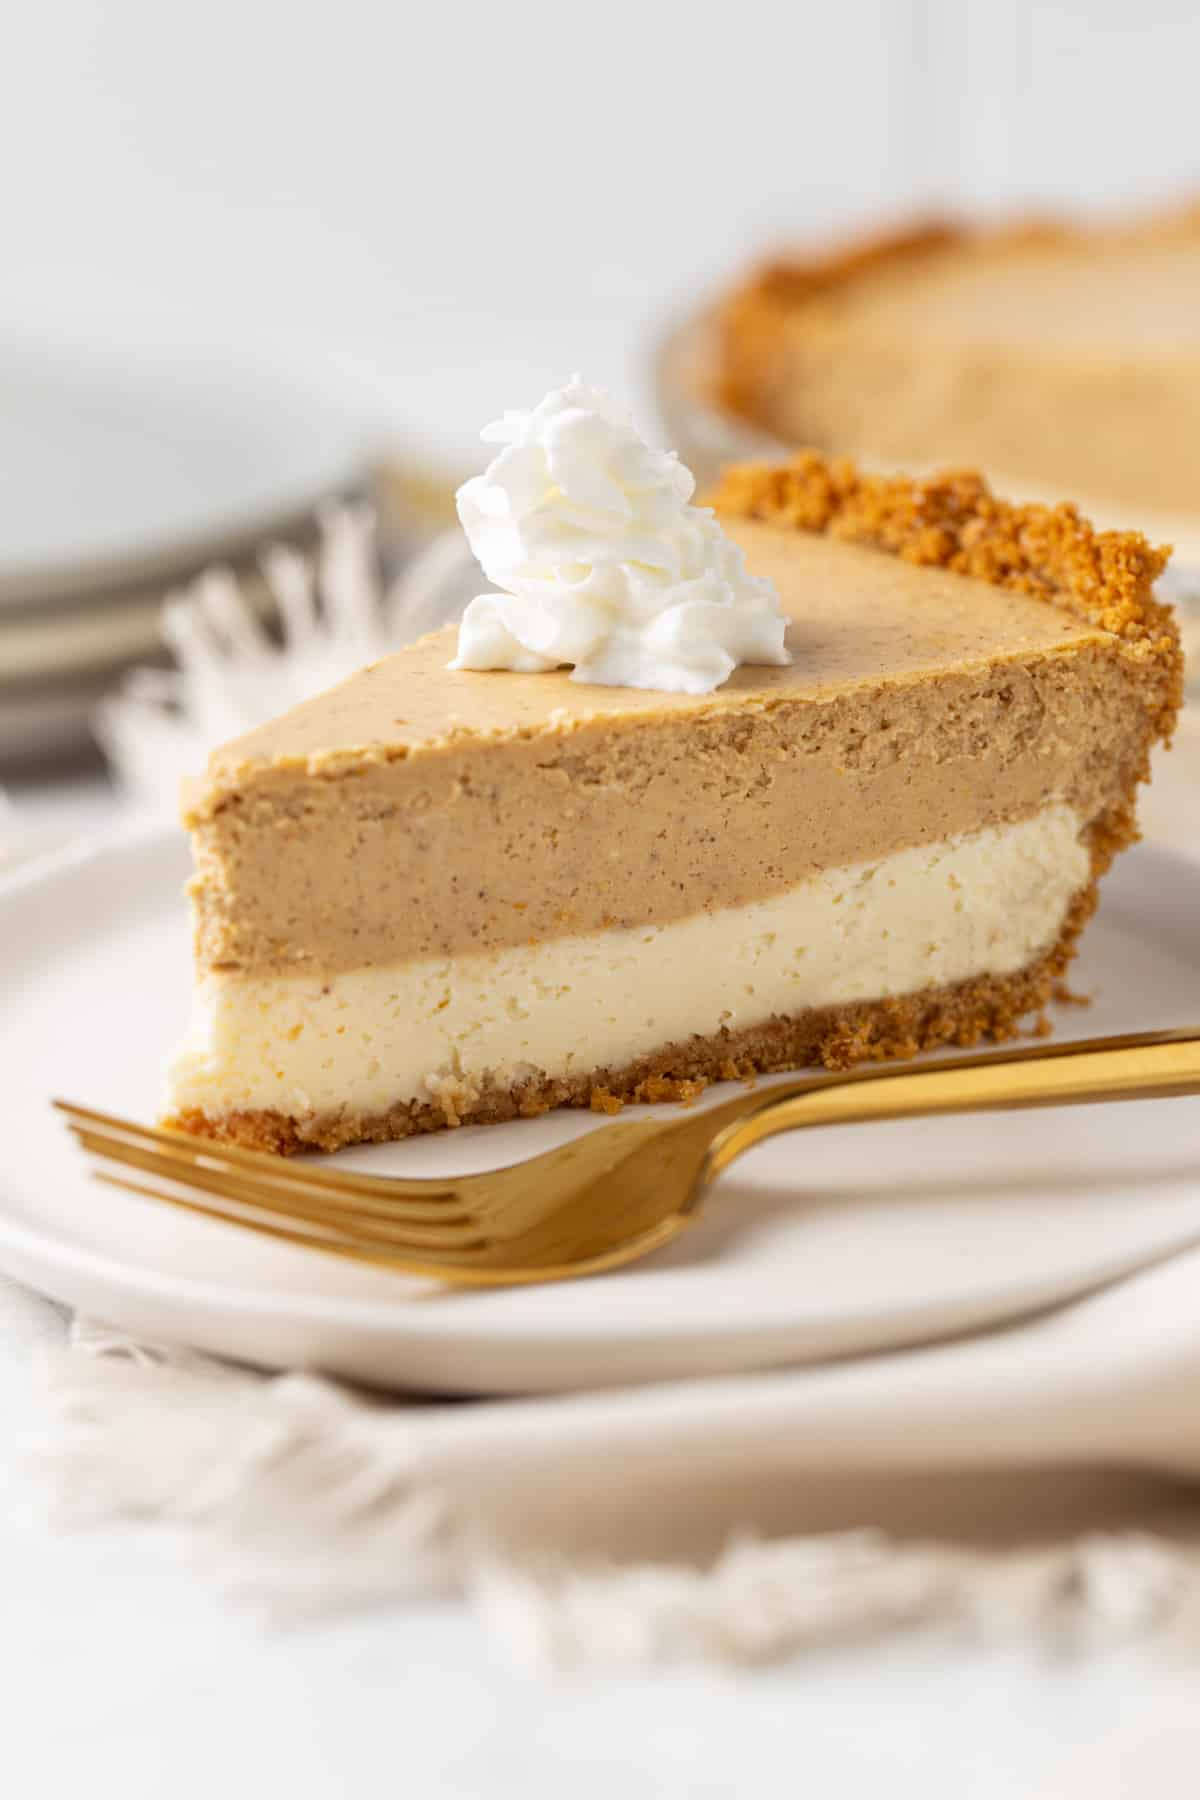 Piece of pie on a white plate with a gold fork.